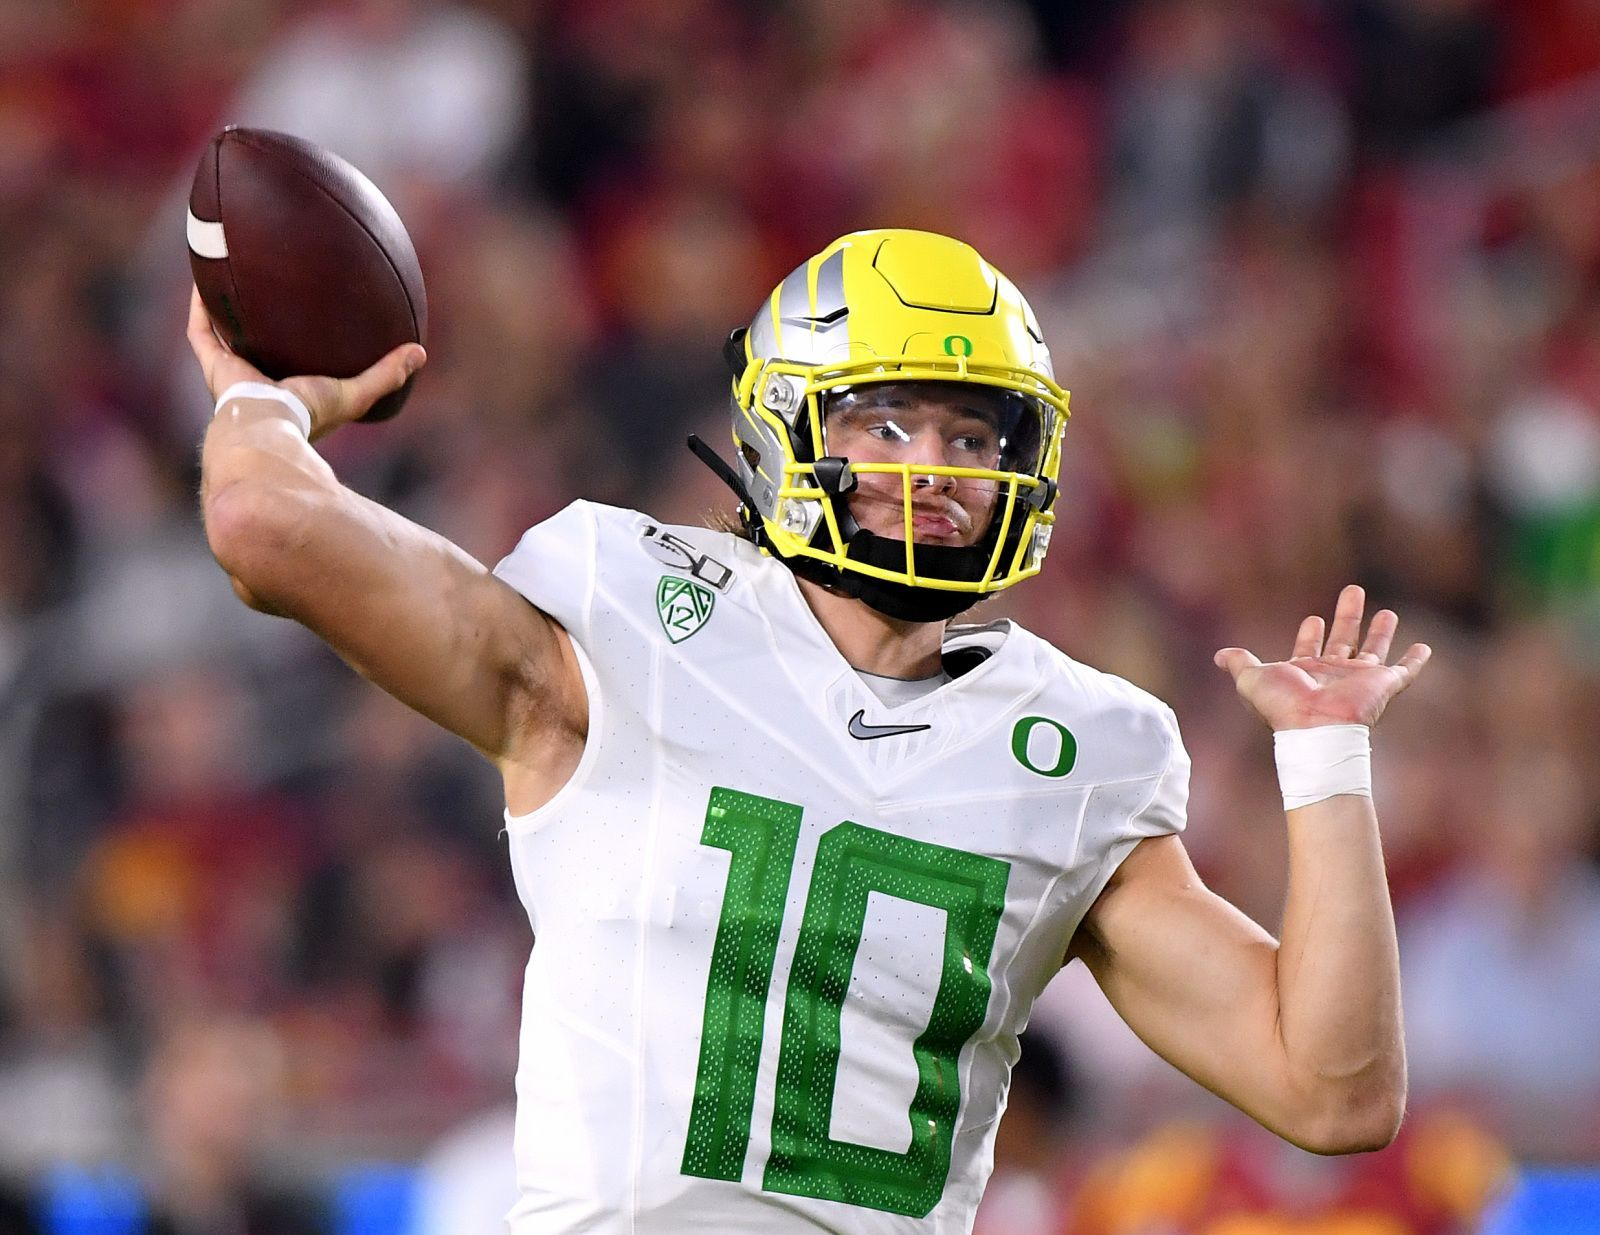 2020 NFL Draft Justin Herbert gaining steam as the QB1